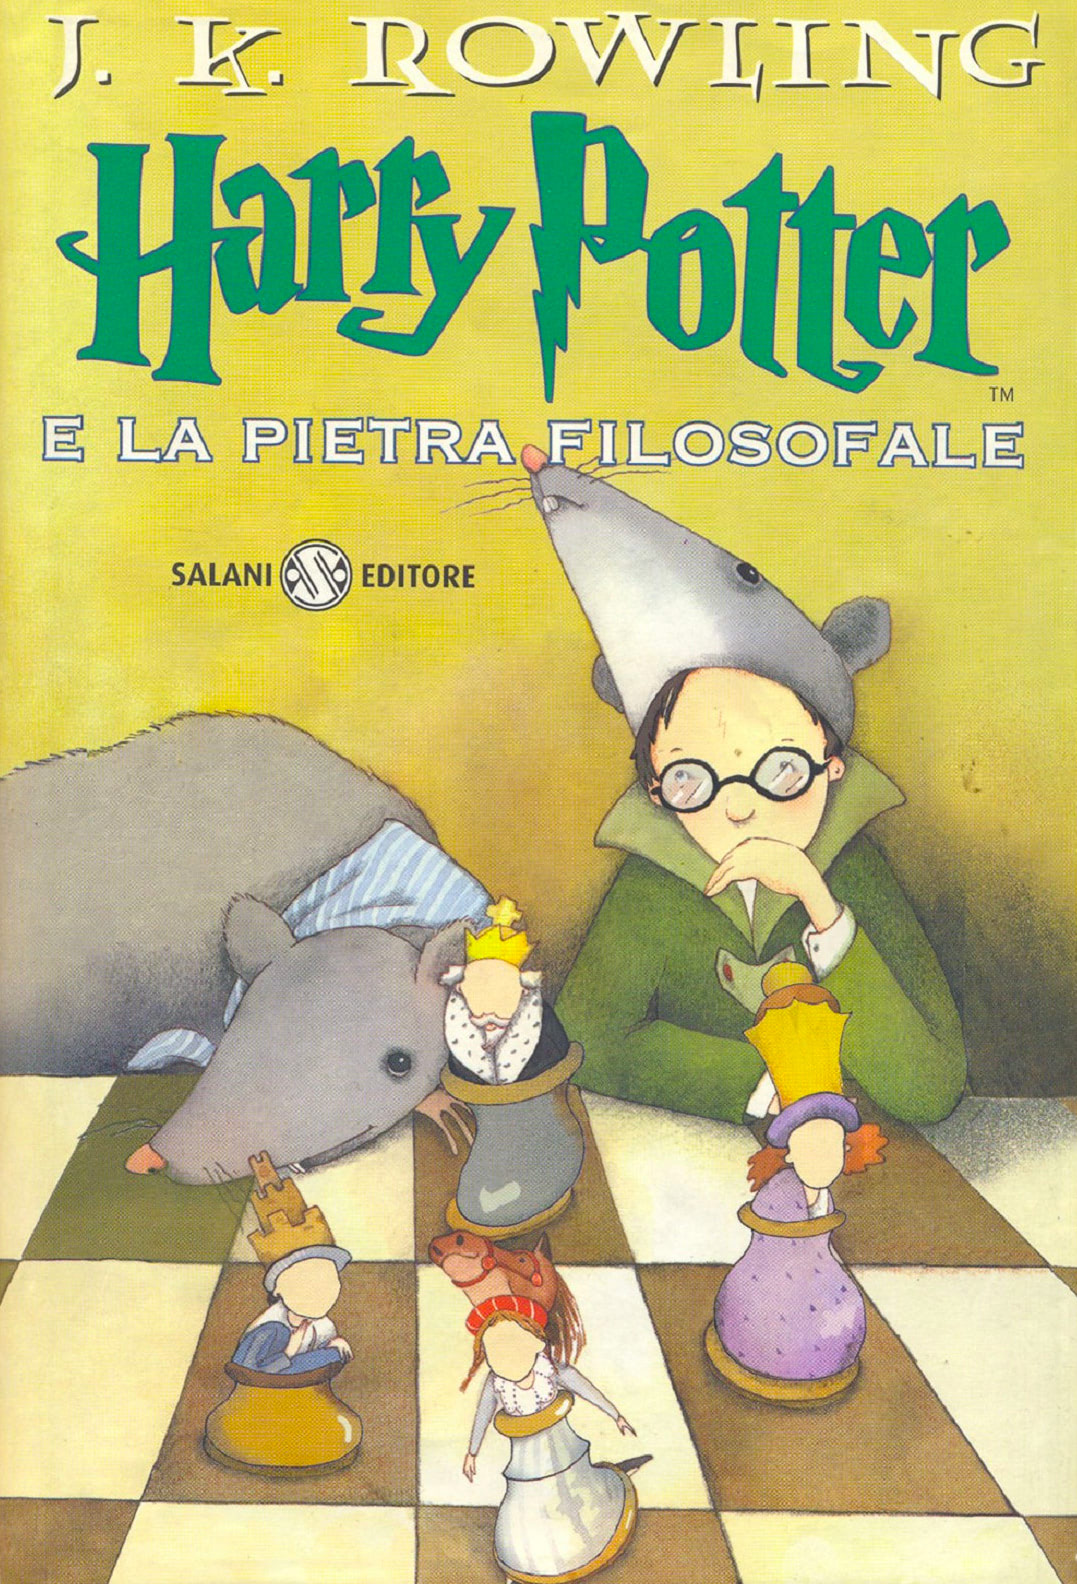 'Philosopher's Stone' Italian edition